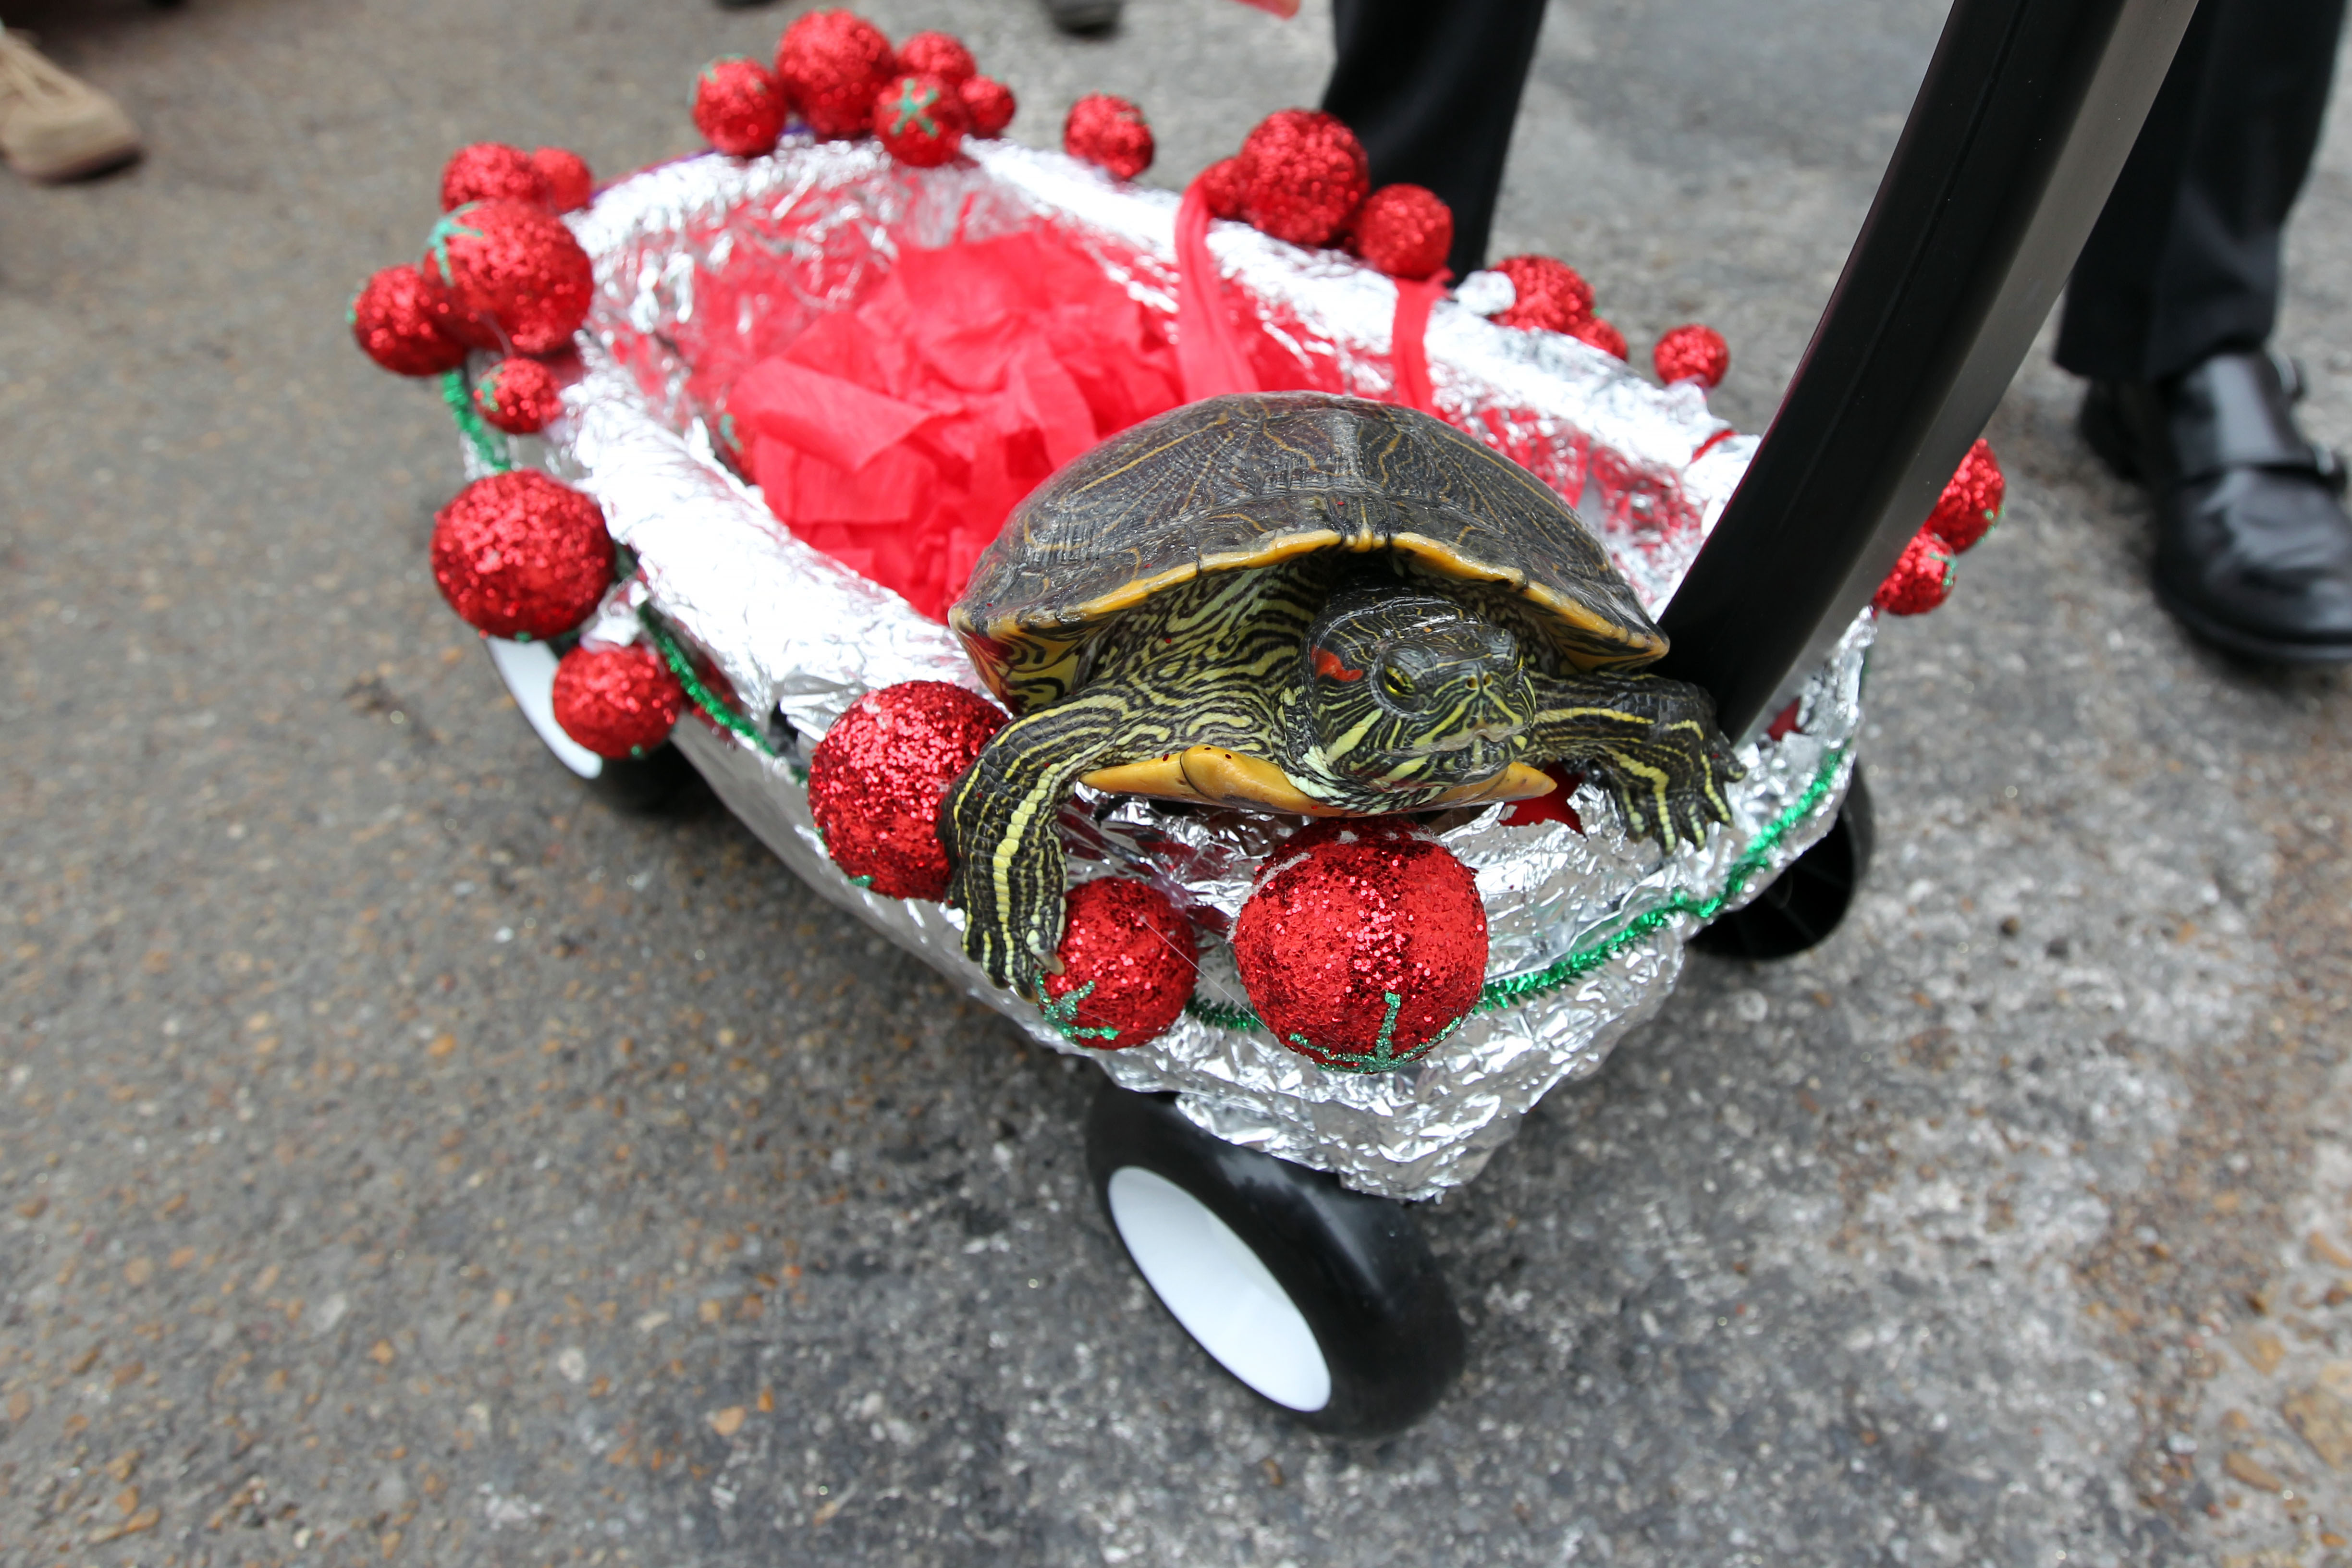 Promotion for 2019 Turtle Parade